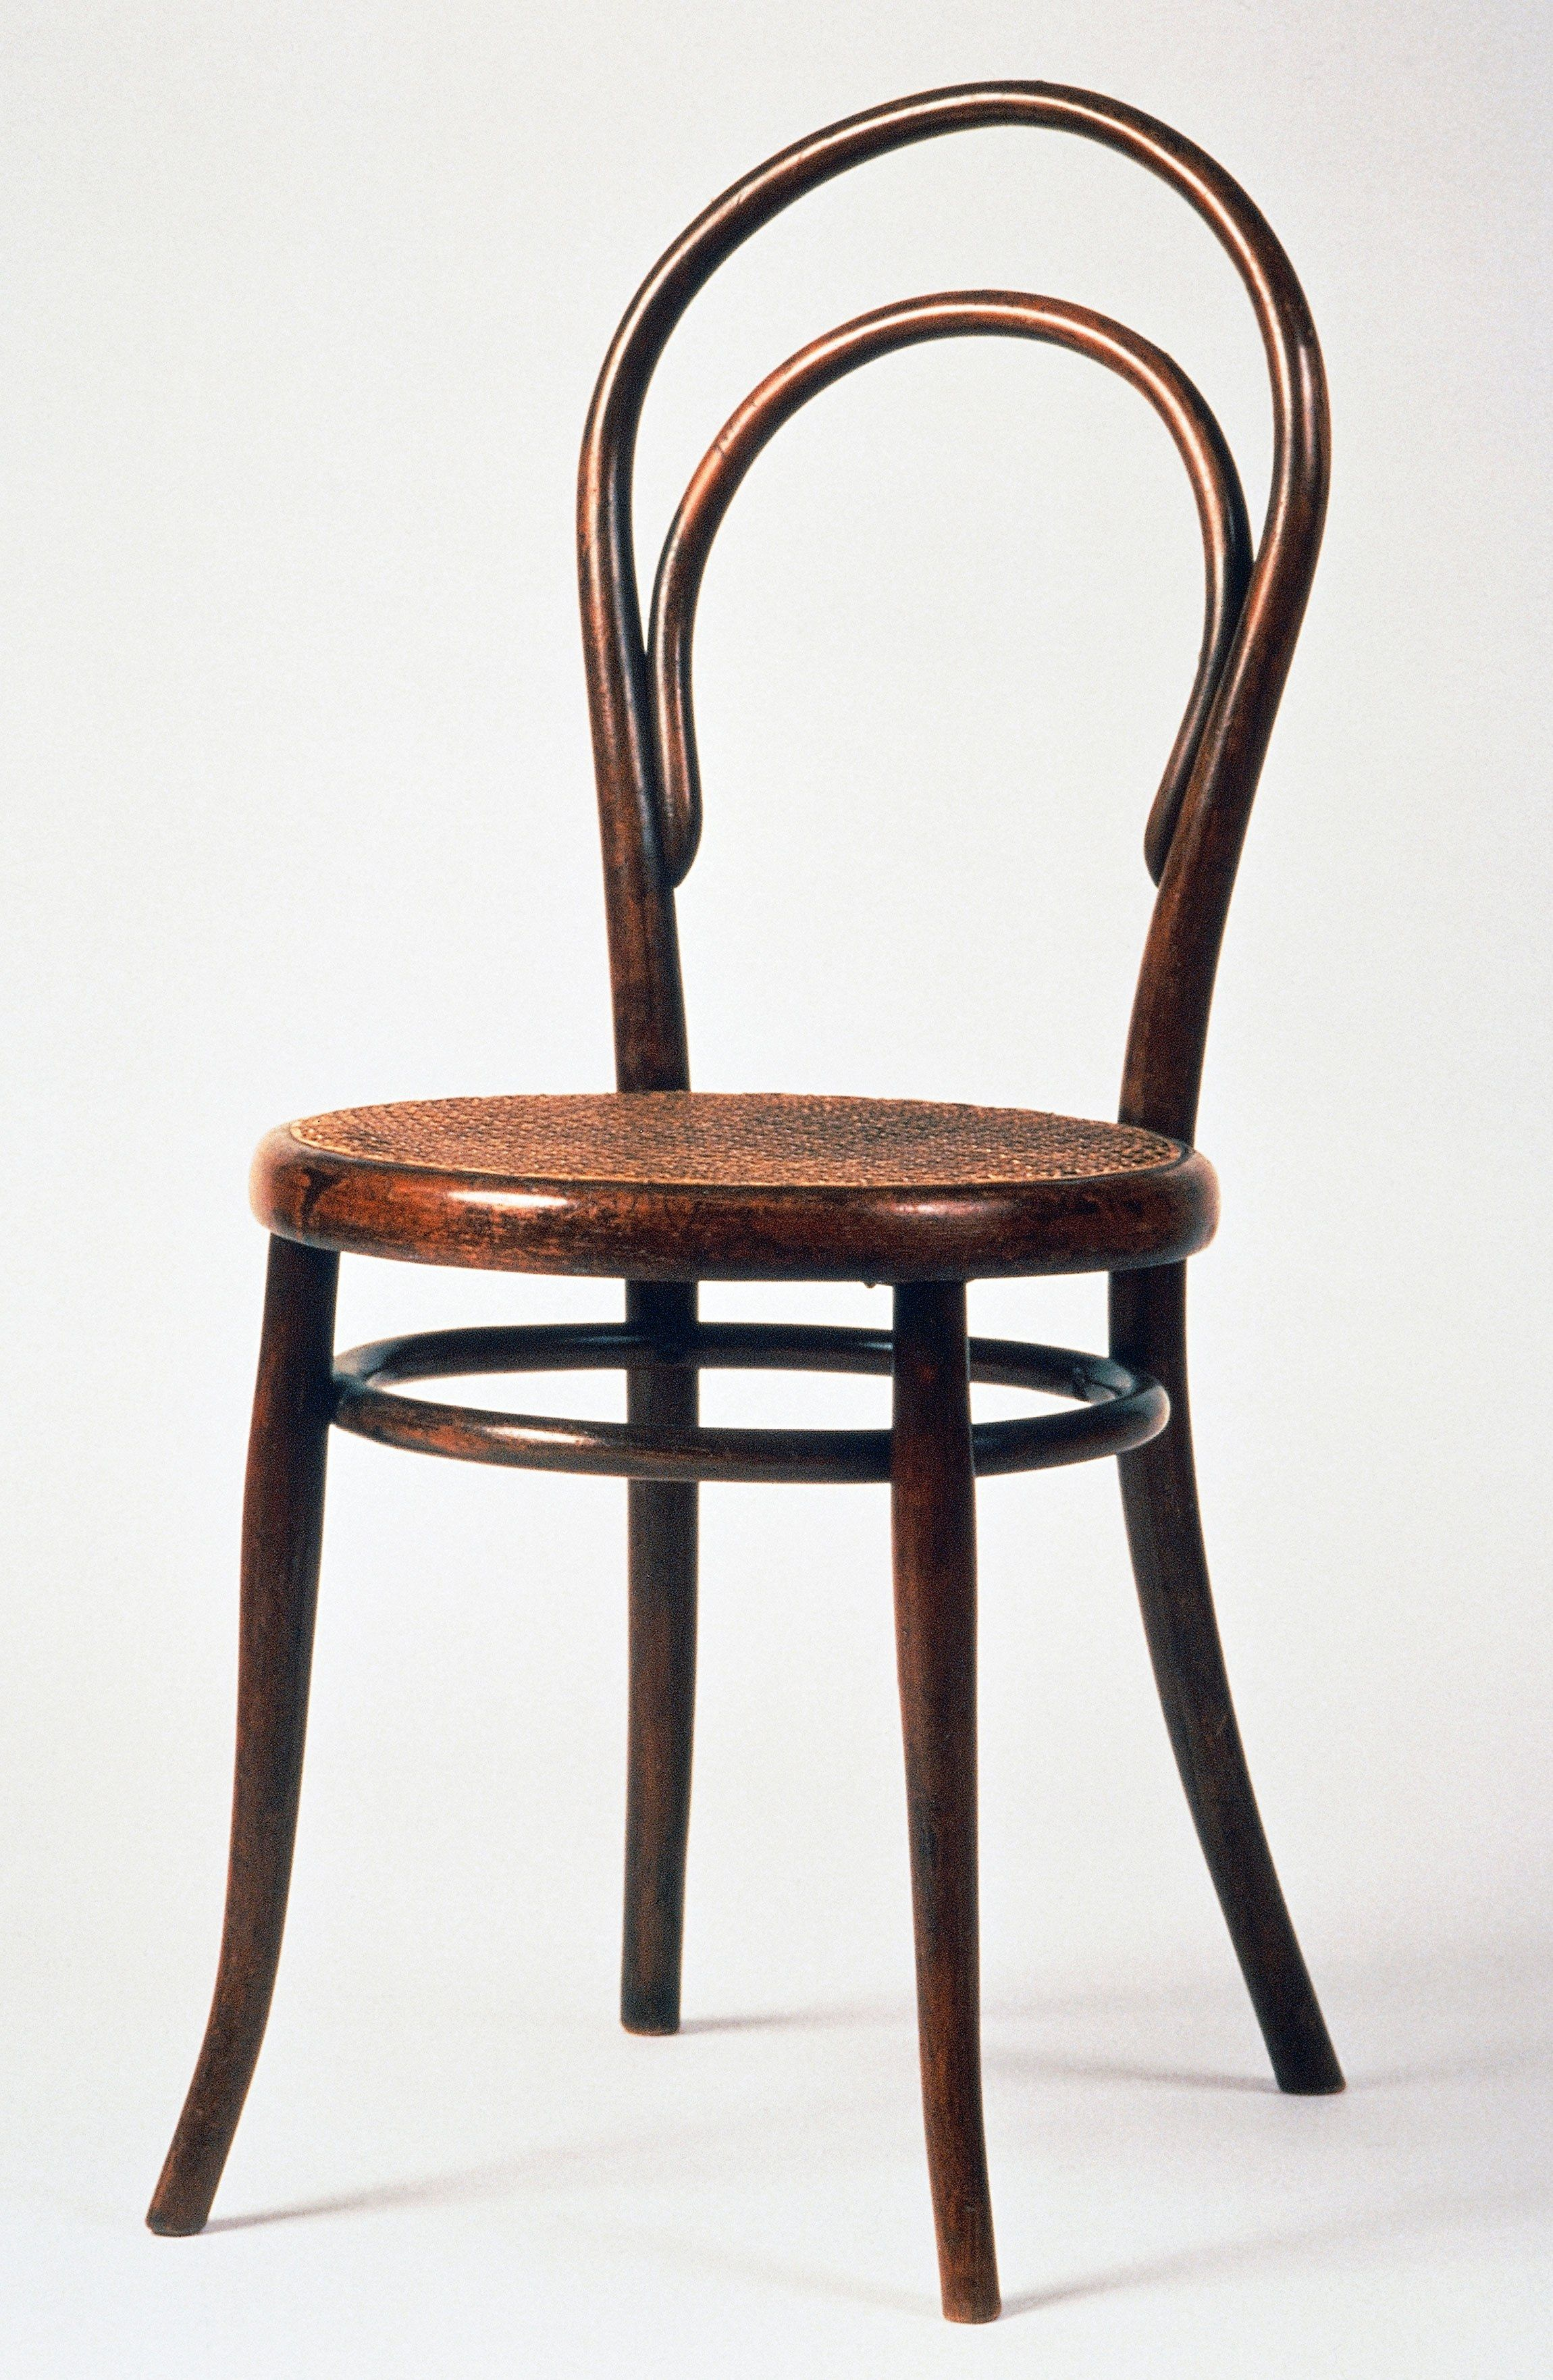 7 Chairs That Changed The World Chairs Pinterest Chair Design